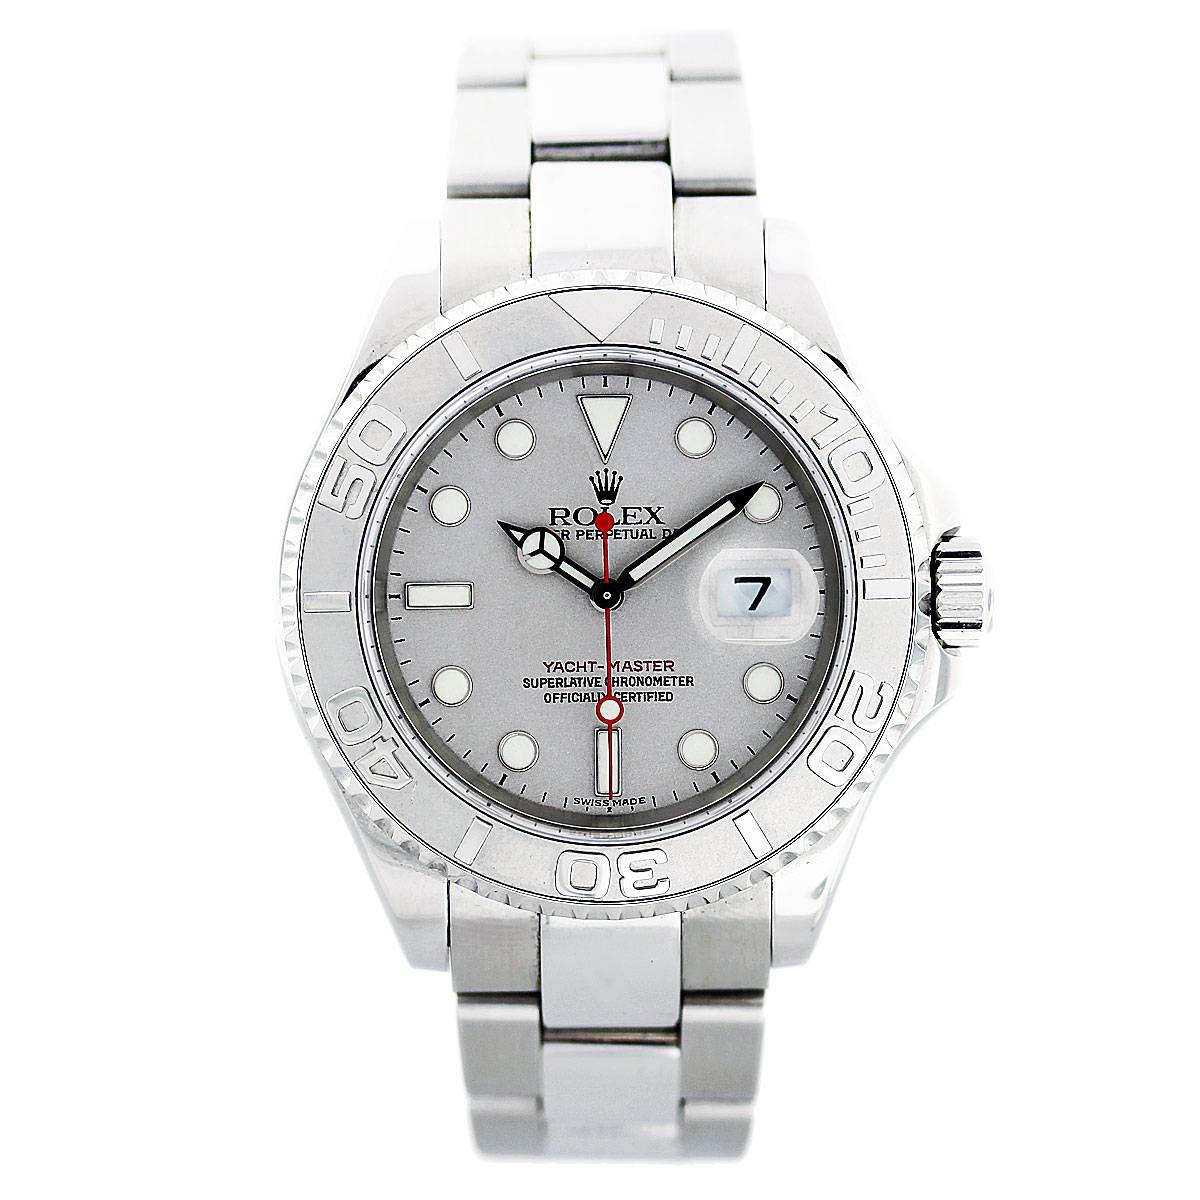 Rolex Yachtmaster 16622 Platinum and Stainless Steel Watch